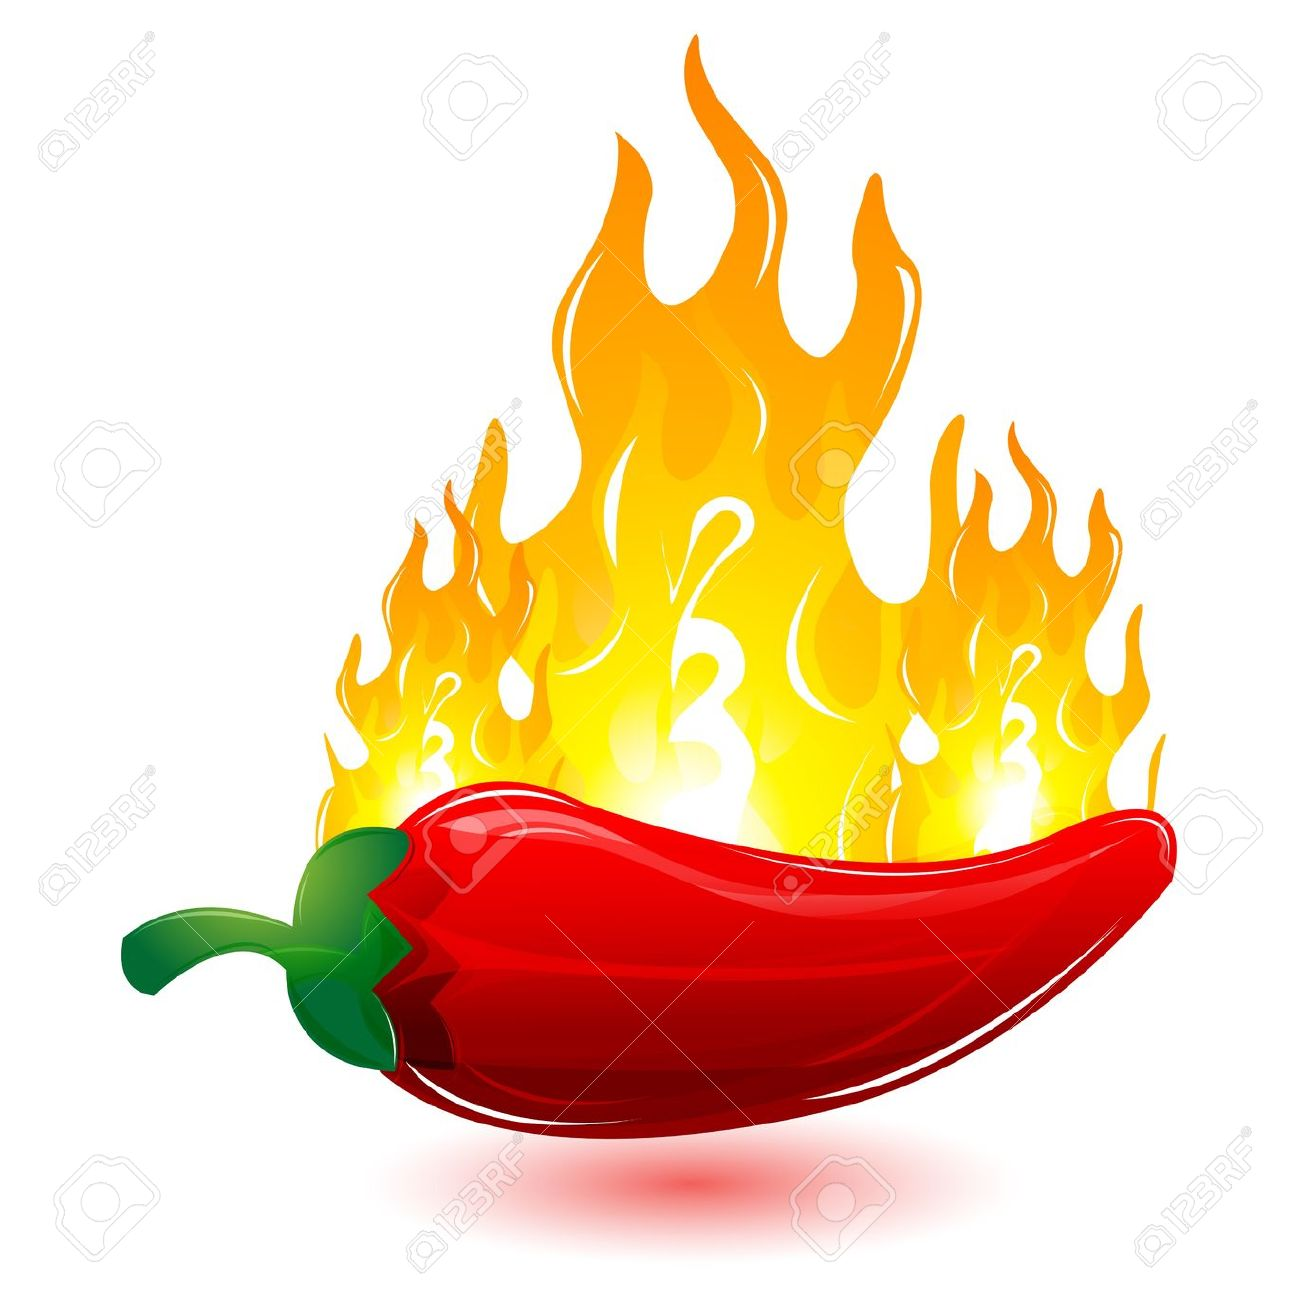 Illustration Of Red Chilli With Fire On White Background Royalty.